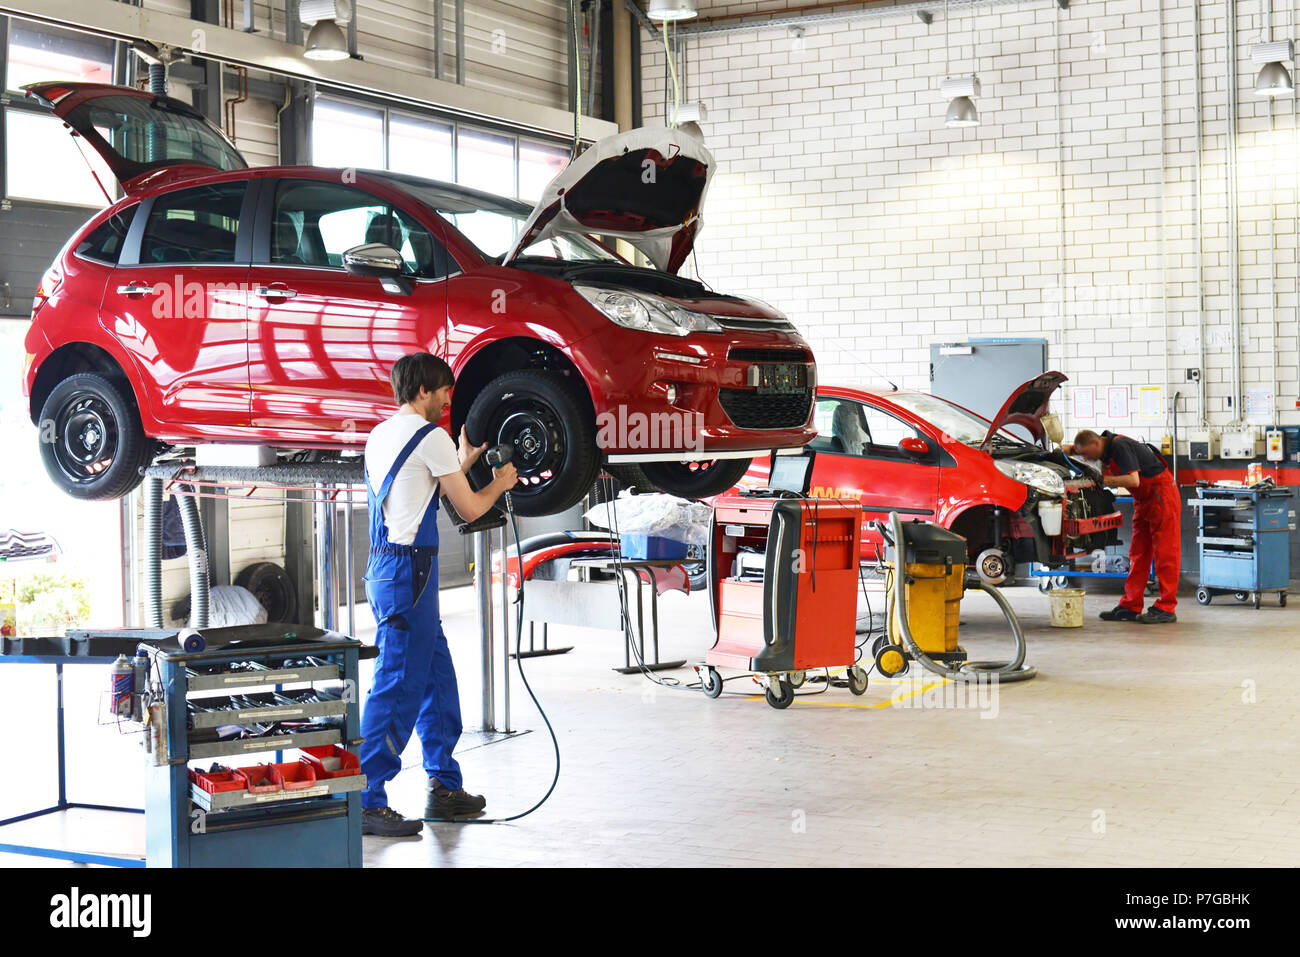 tyre change on the car by mechanics in a workshop - Stock Image